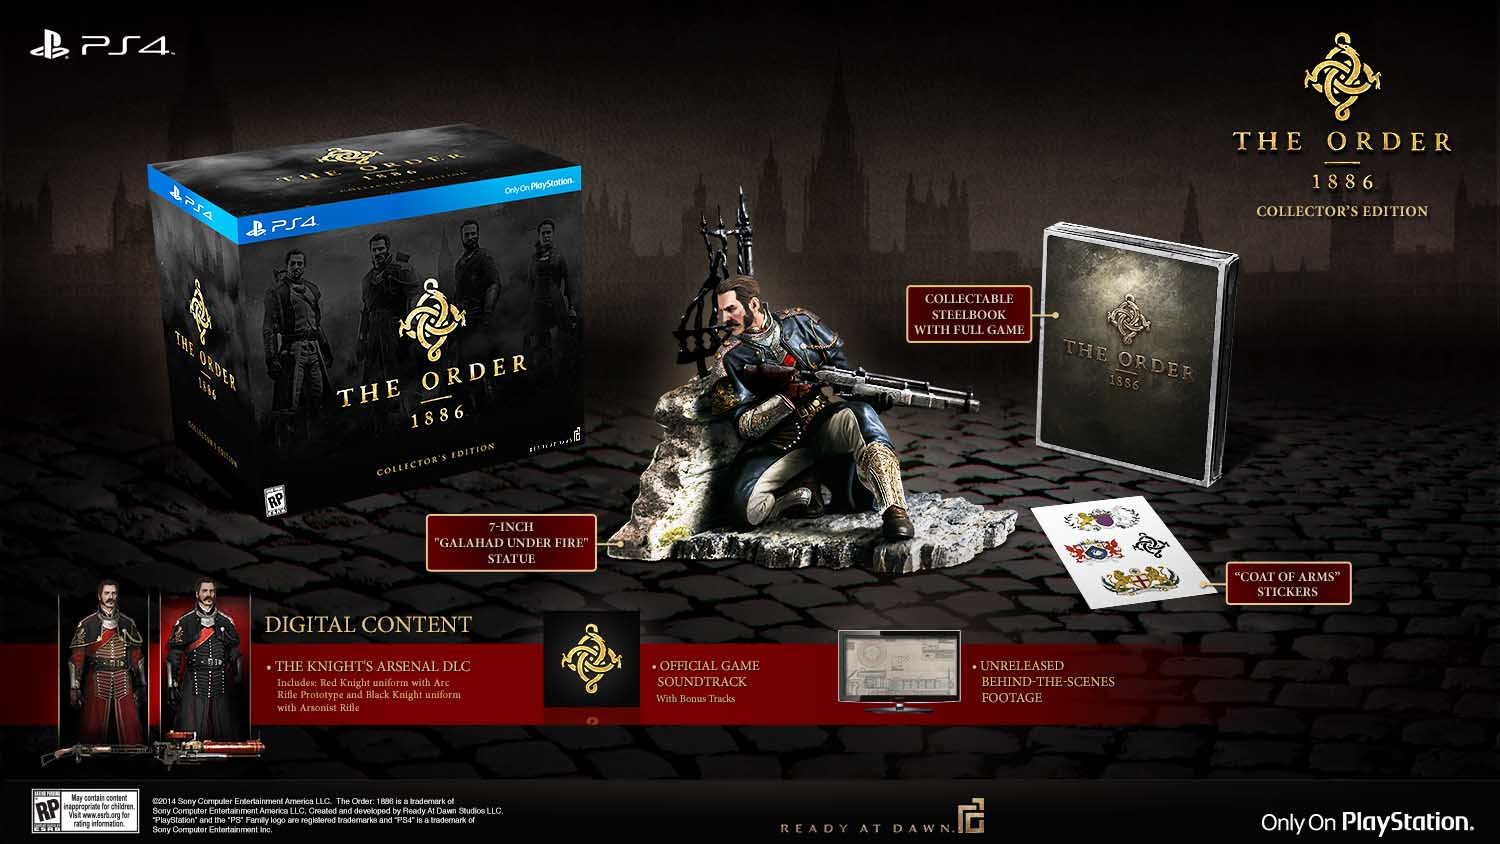 The Order: 1886 US Collector's Edition